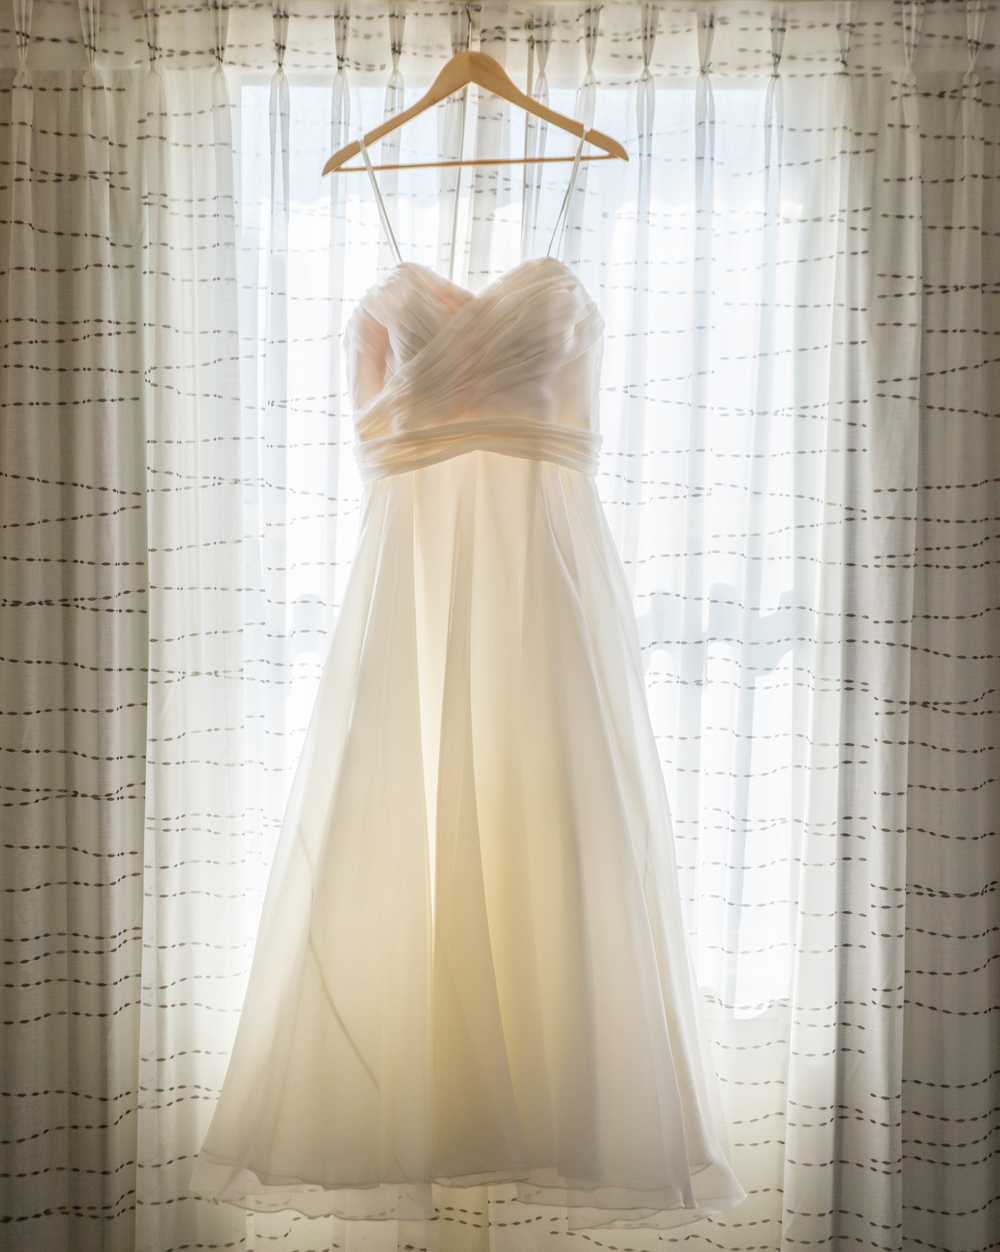 wedding dress window backlit